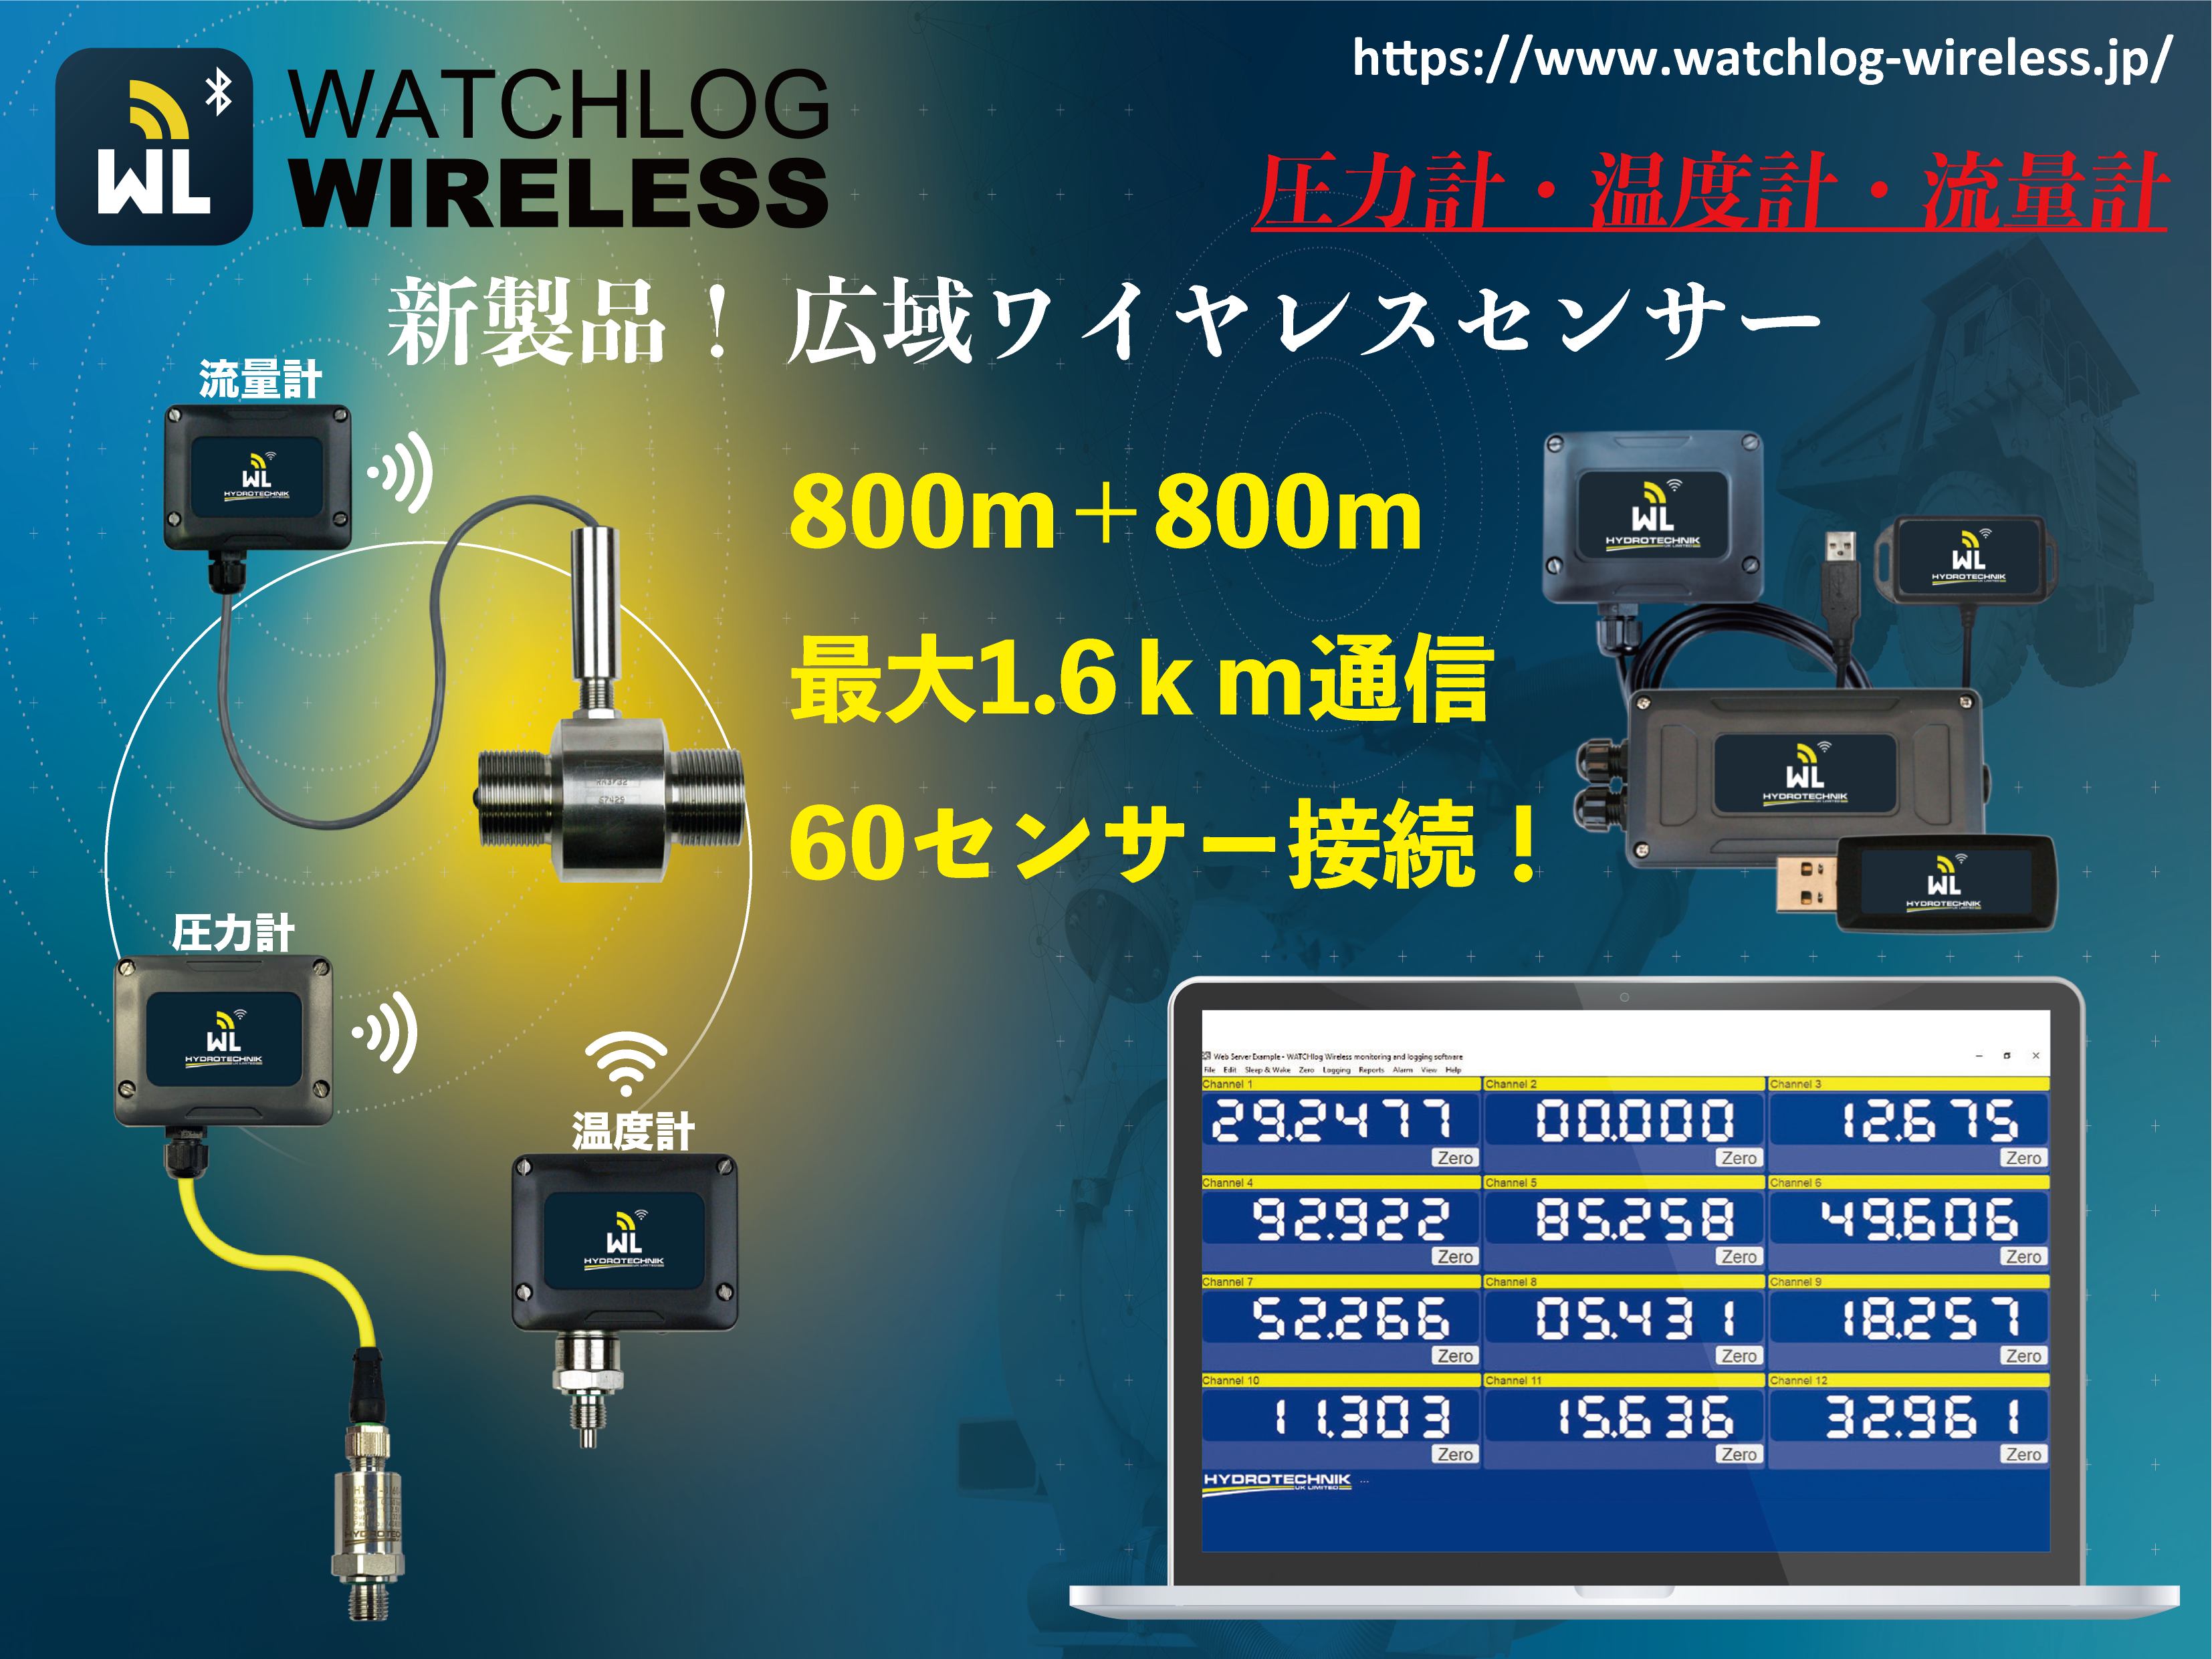 WATCHLOG WIRELESS